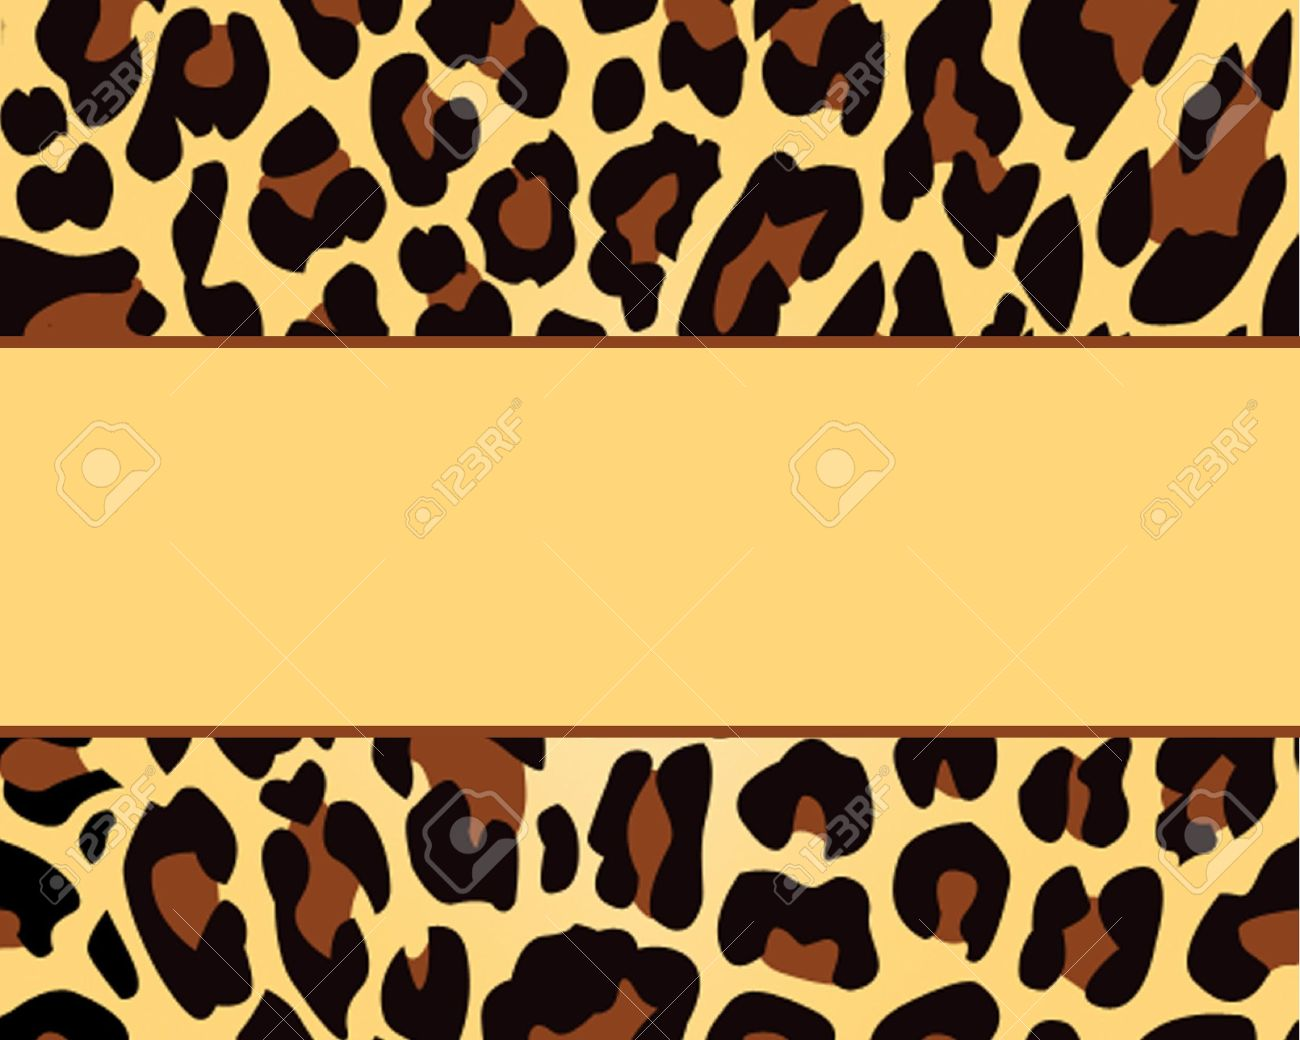 Leopard Print Background Template Stock Photo, Picture And Royalty ...